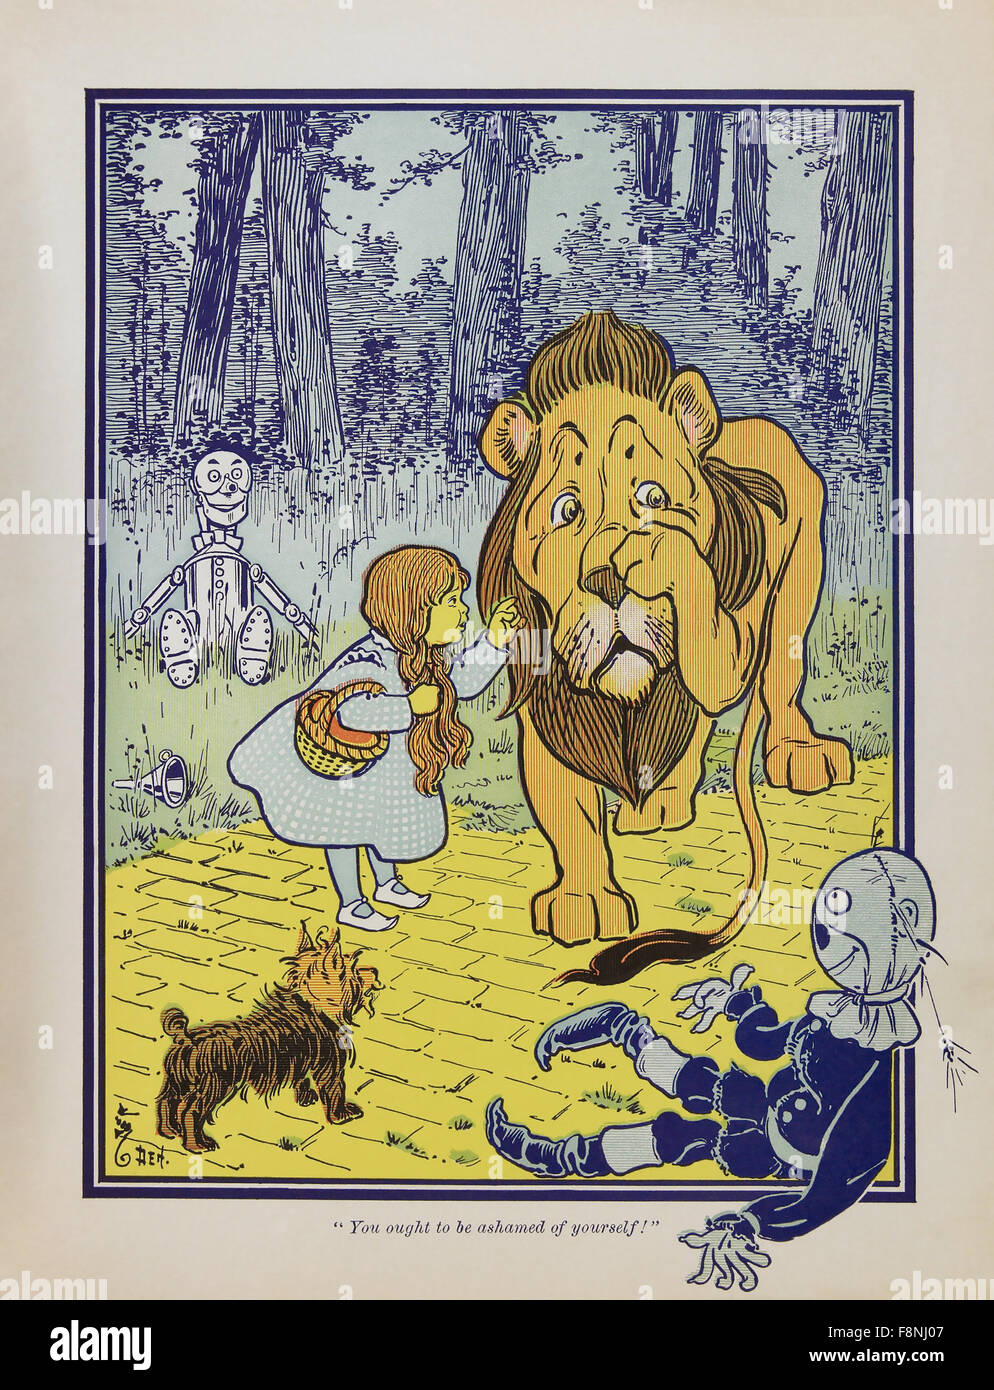 THE WONDERFUL WIZARD OF OZ  Dorothy meets the Cowardly Lion drawn for the first edition in 1900 of the book by Frank - Stock Image